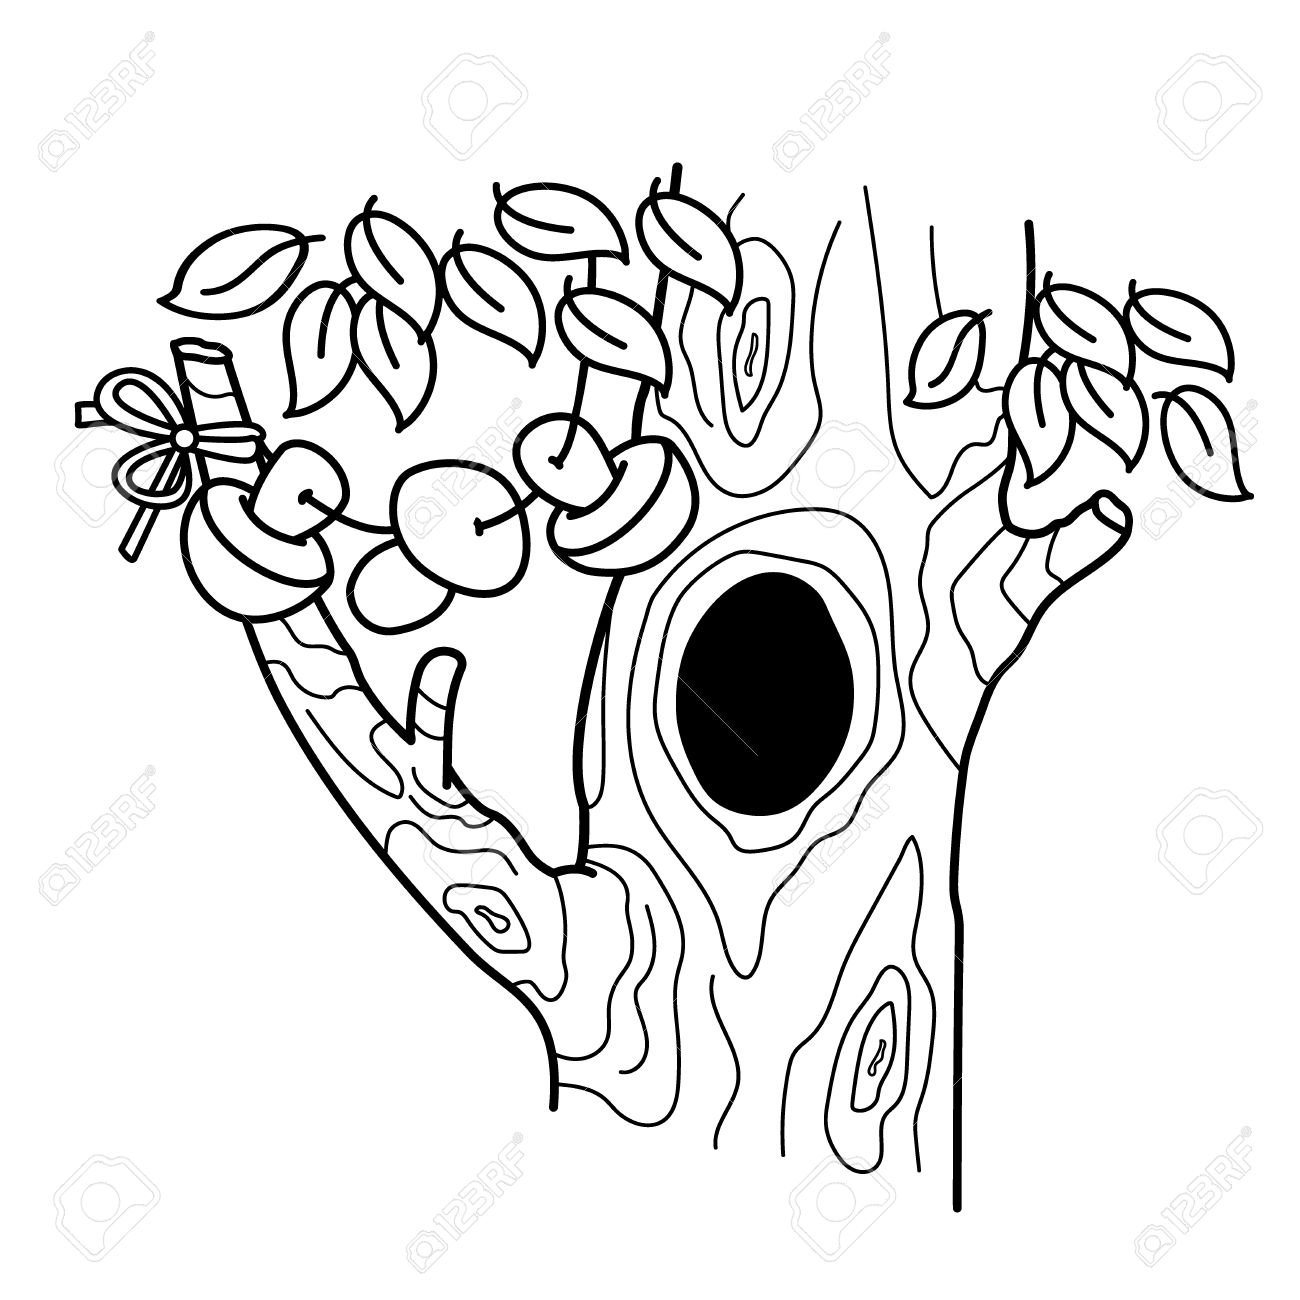 1300x1300 Coloring Page Outline Of Cartoon Tree With A Hollow. Home